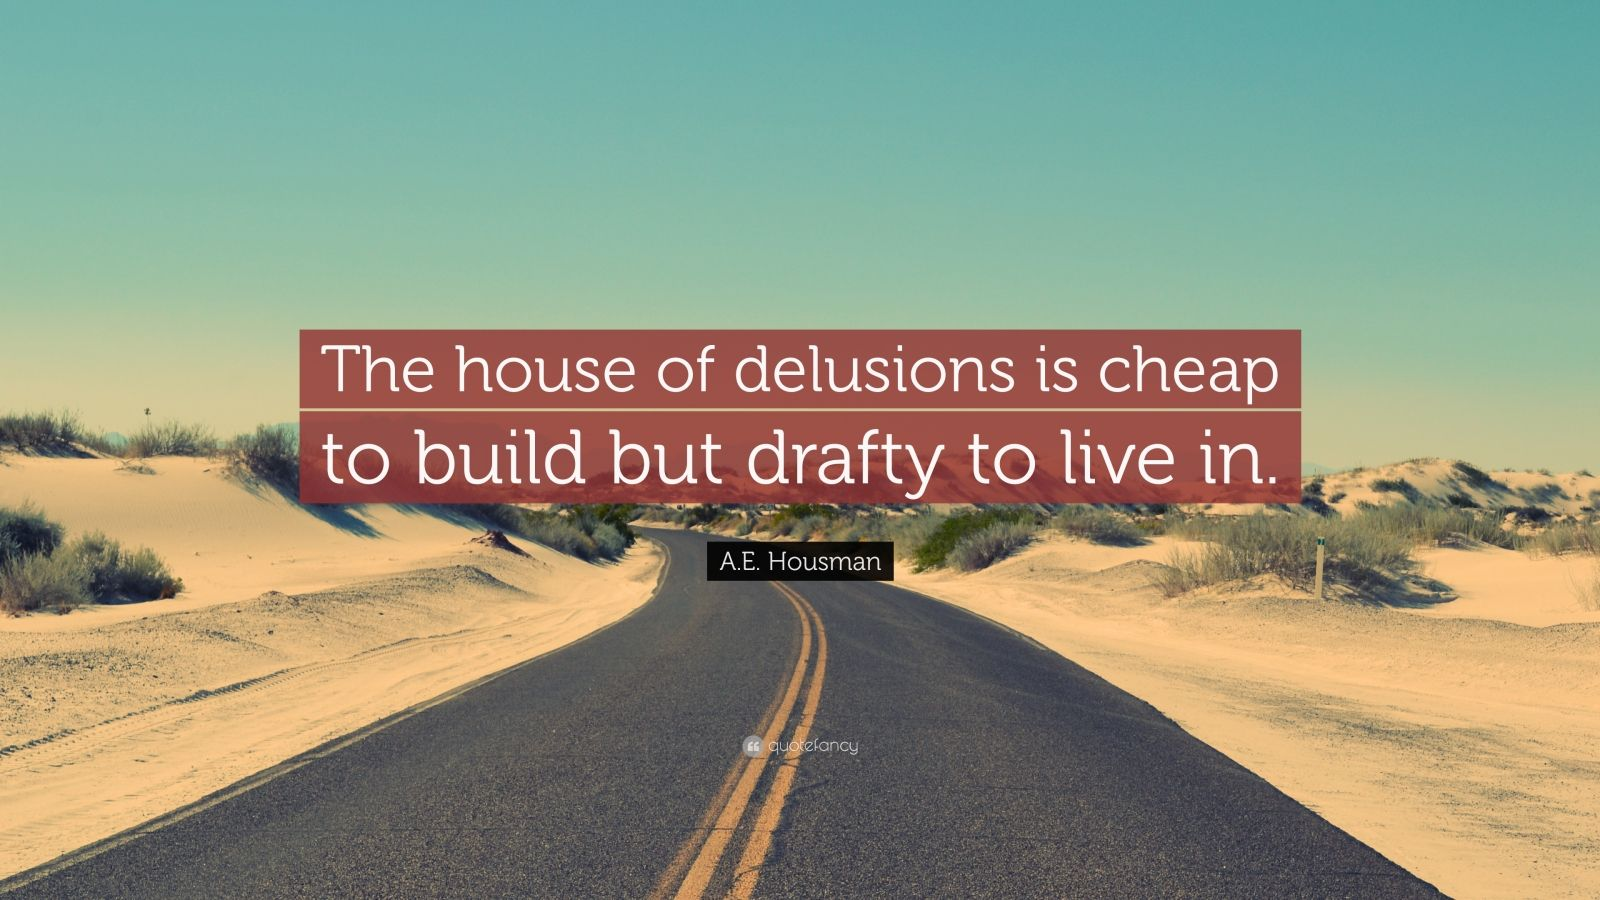 """A.E. Housman Quote: """"The house of delusions is cheap to build but drafty to live in."""""""